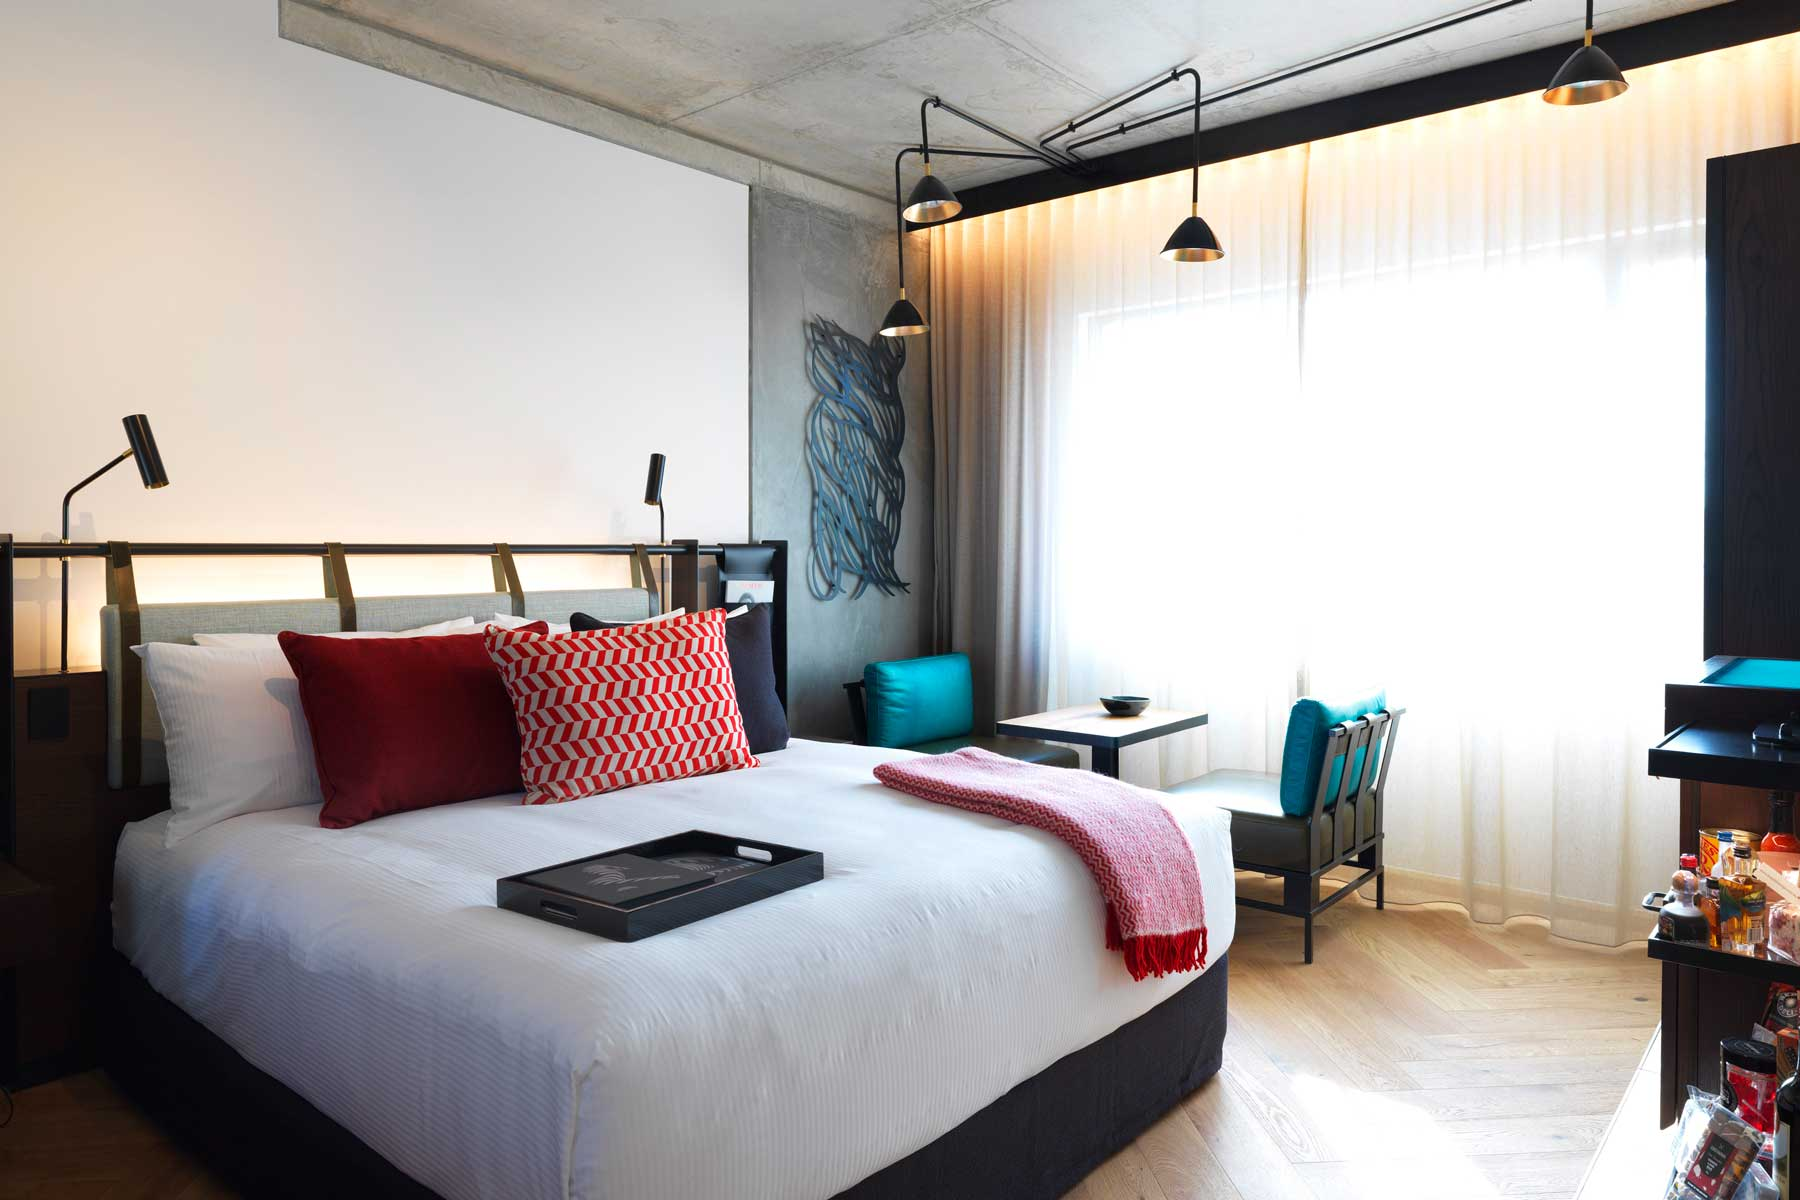 QT Melbourne - QT's Melbourne outpost maintains the hotel group's whimsical identity, with a location and amenities to suit those on a fun weekend away in the city.133 Russell Street, Melbourne